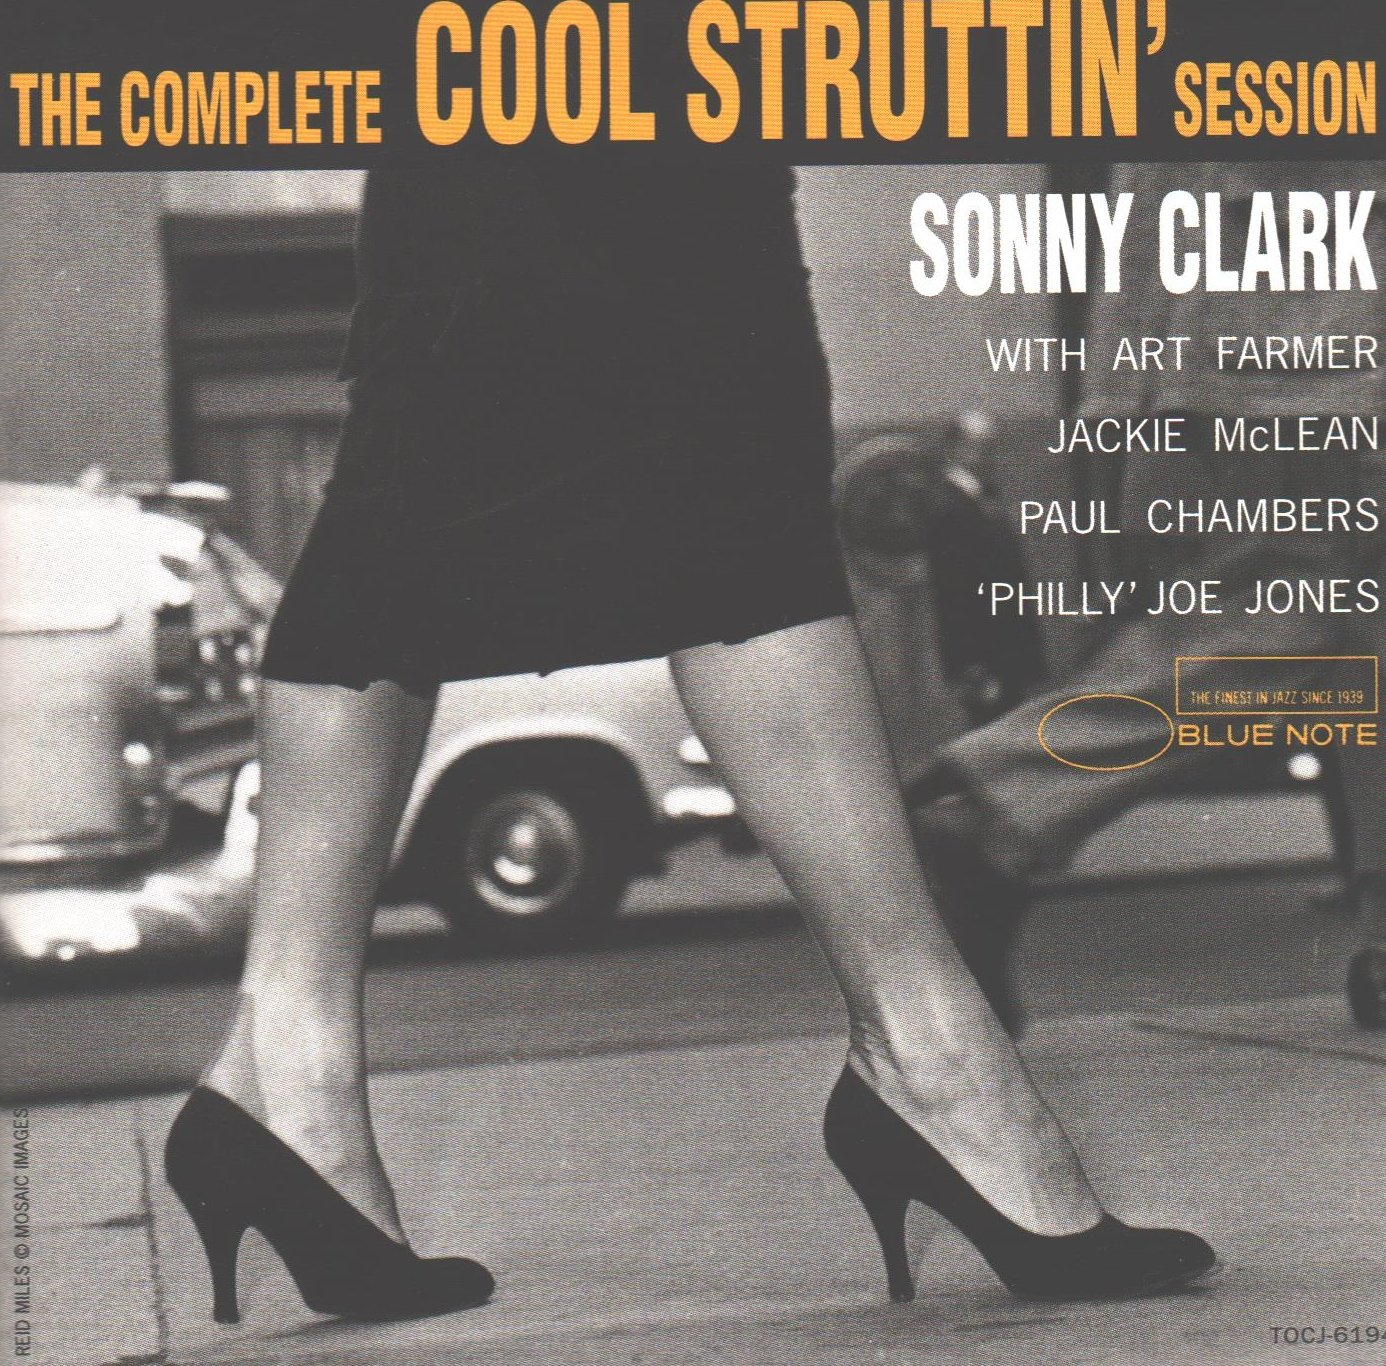 Sonny Clark, Art Farmer, Jackie McLean, Paul Chambers, Philly Joe Jones -  The Complete Cool Struttin' Session (Japanese Import) - Amazon.com Music